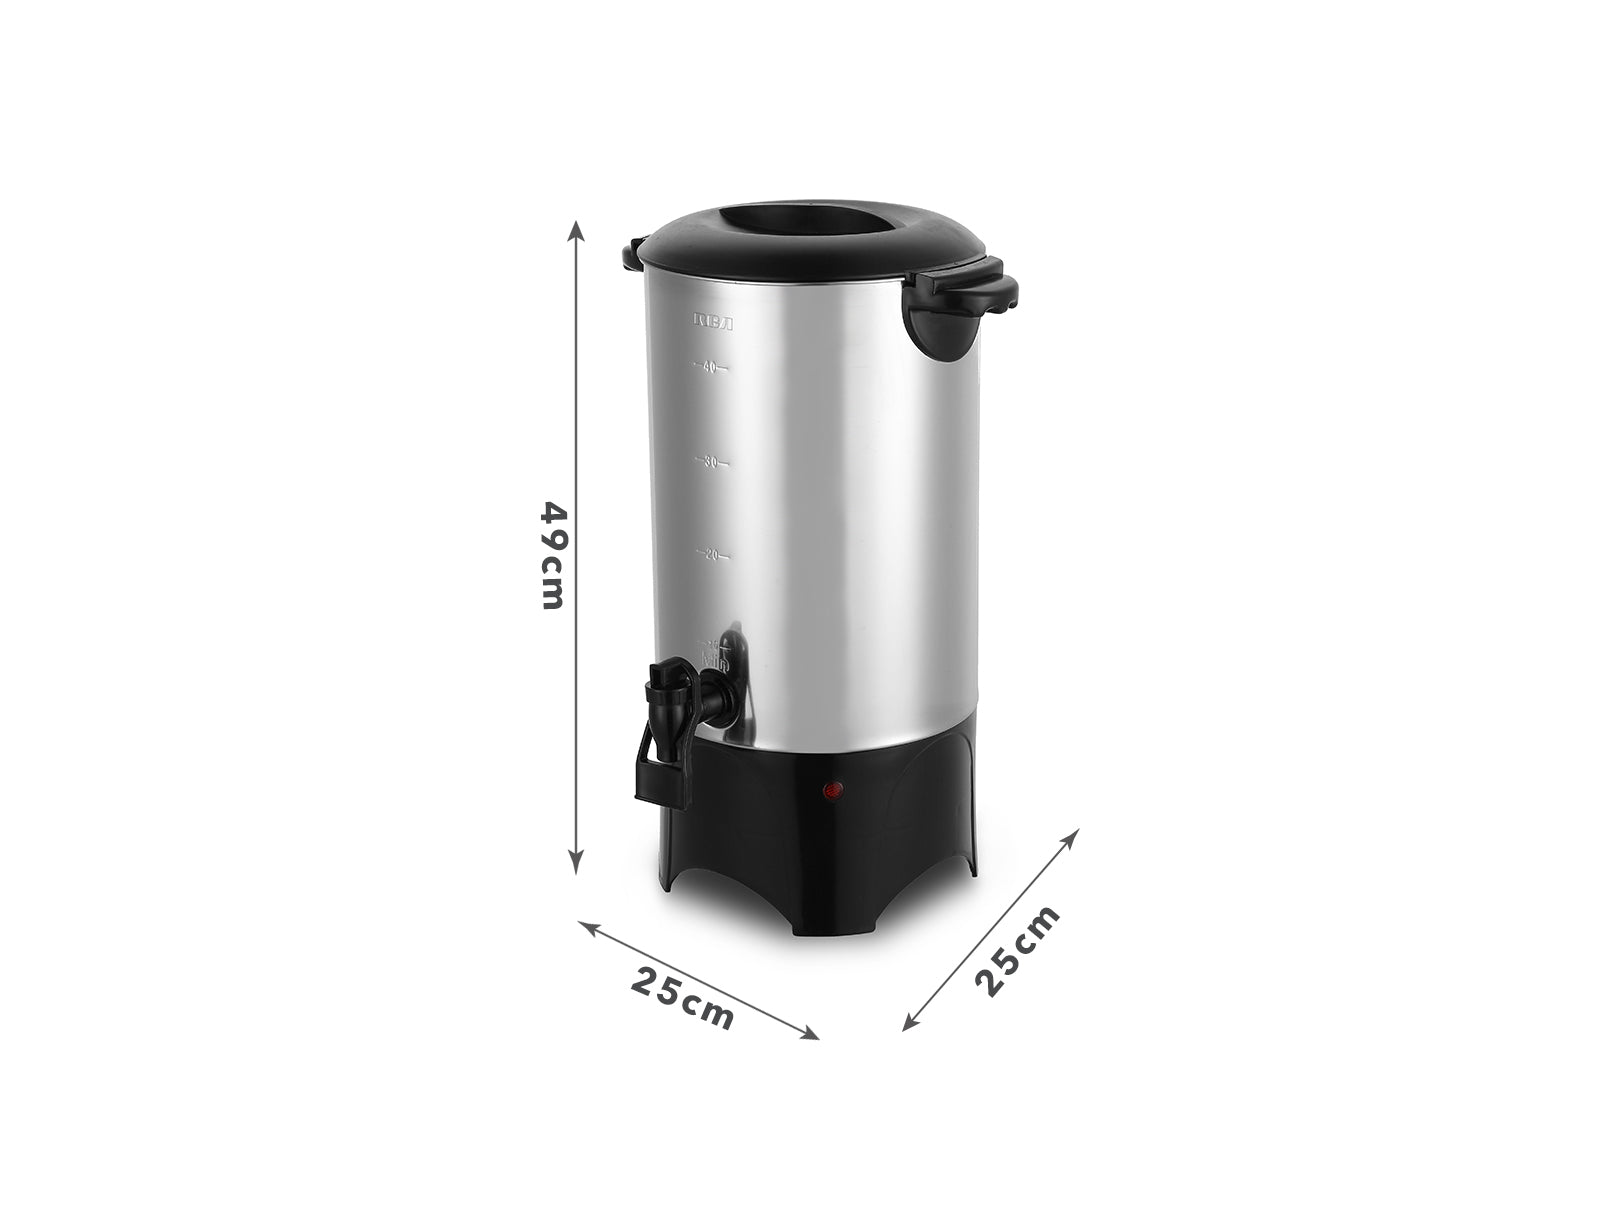 Cafetera de 40 Tazas / 40 Cup Coffee Industrial Machine